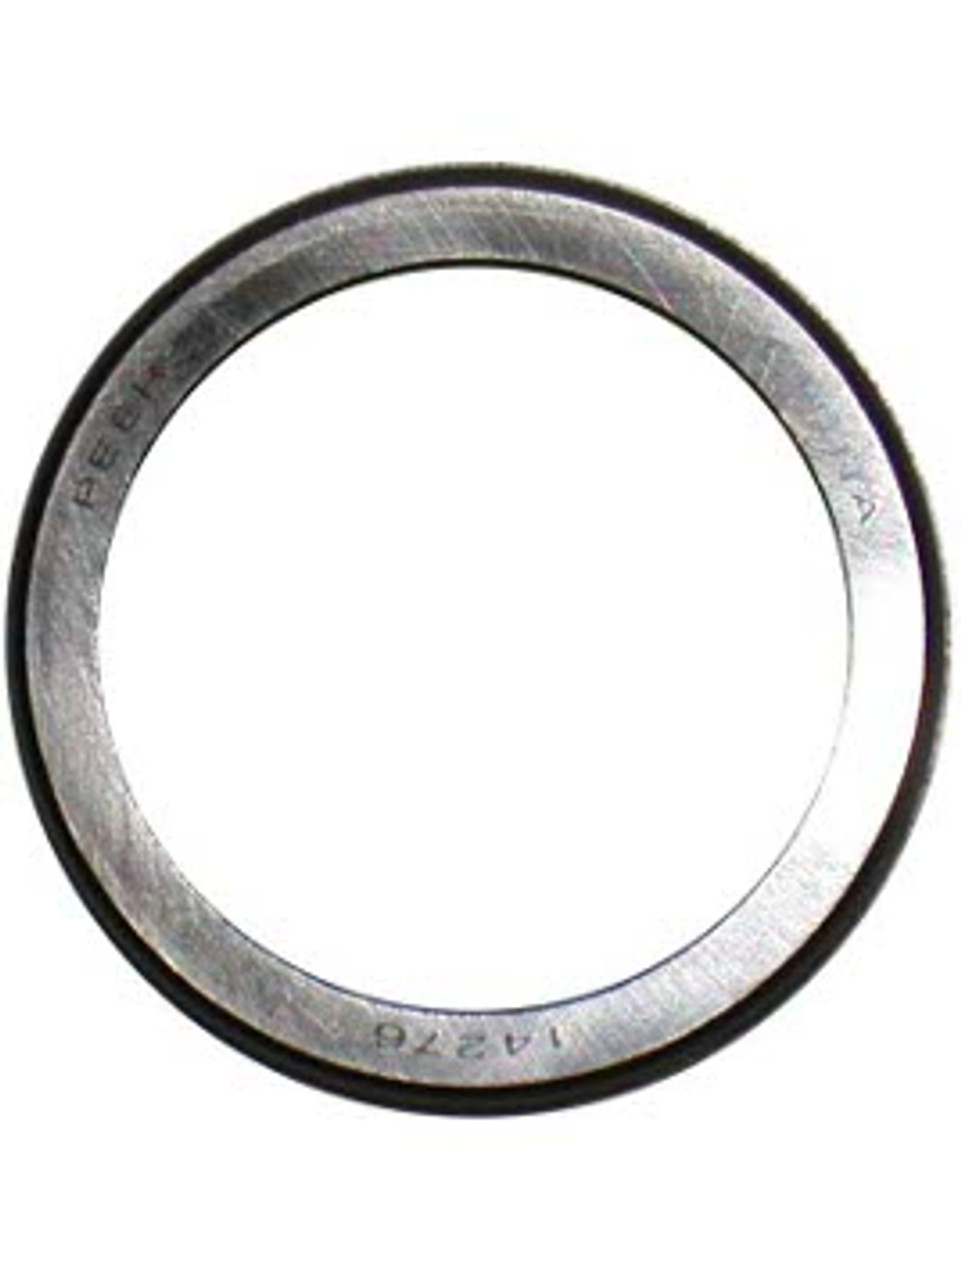 L67010 --- Race (Cup) for Bearing # LM67048